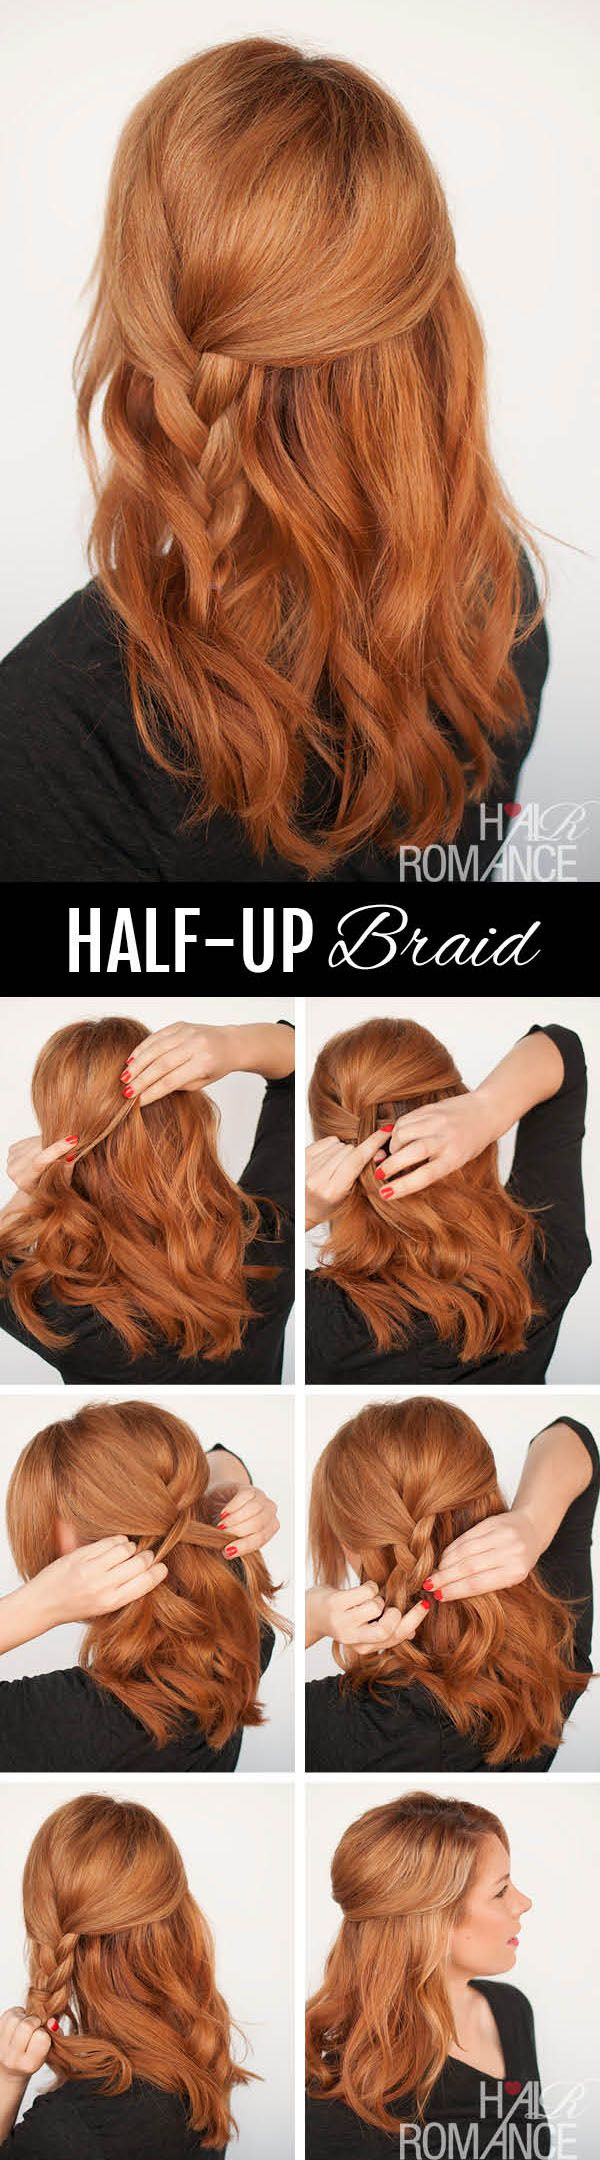 Half Up Braided Hairstyle Tutorial